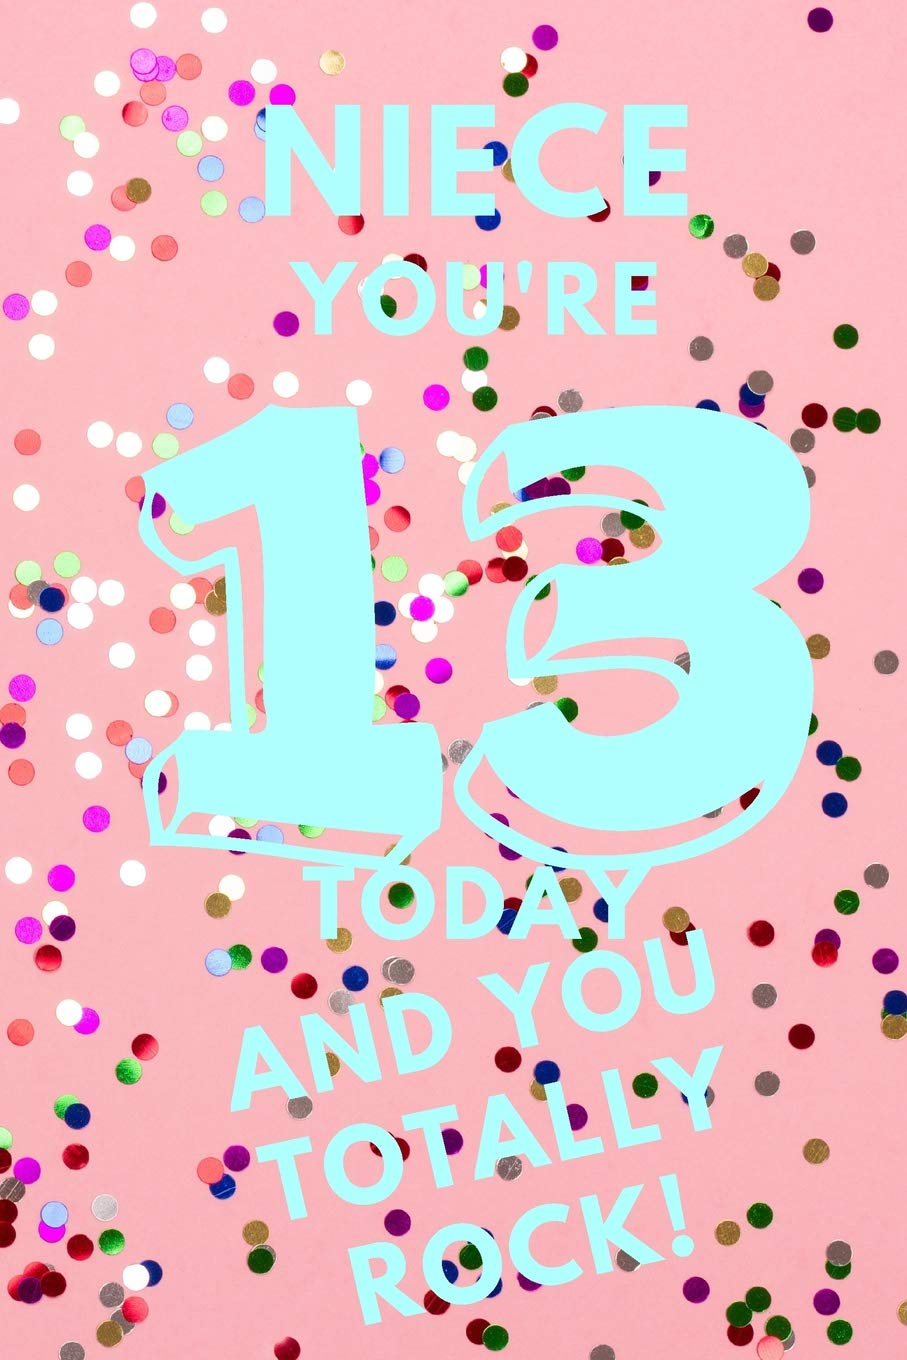 Niece You Re 13 Today And You Totally Rock Pink Confetti Thirteen 13 Yr Old Girl Journal Ideas Notebook Gift Idea For 13th Happy Birthday Stocking Stuffer Filler Card Alternative